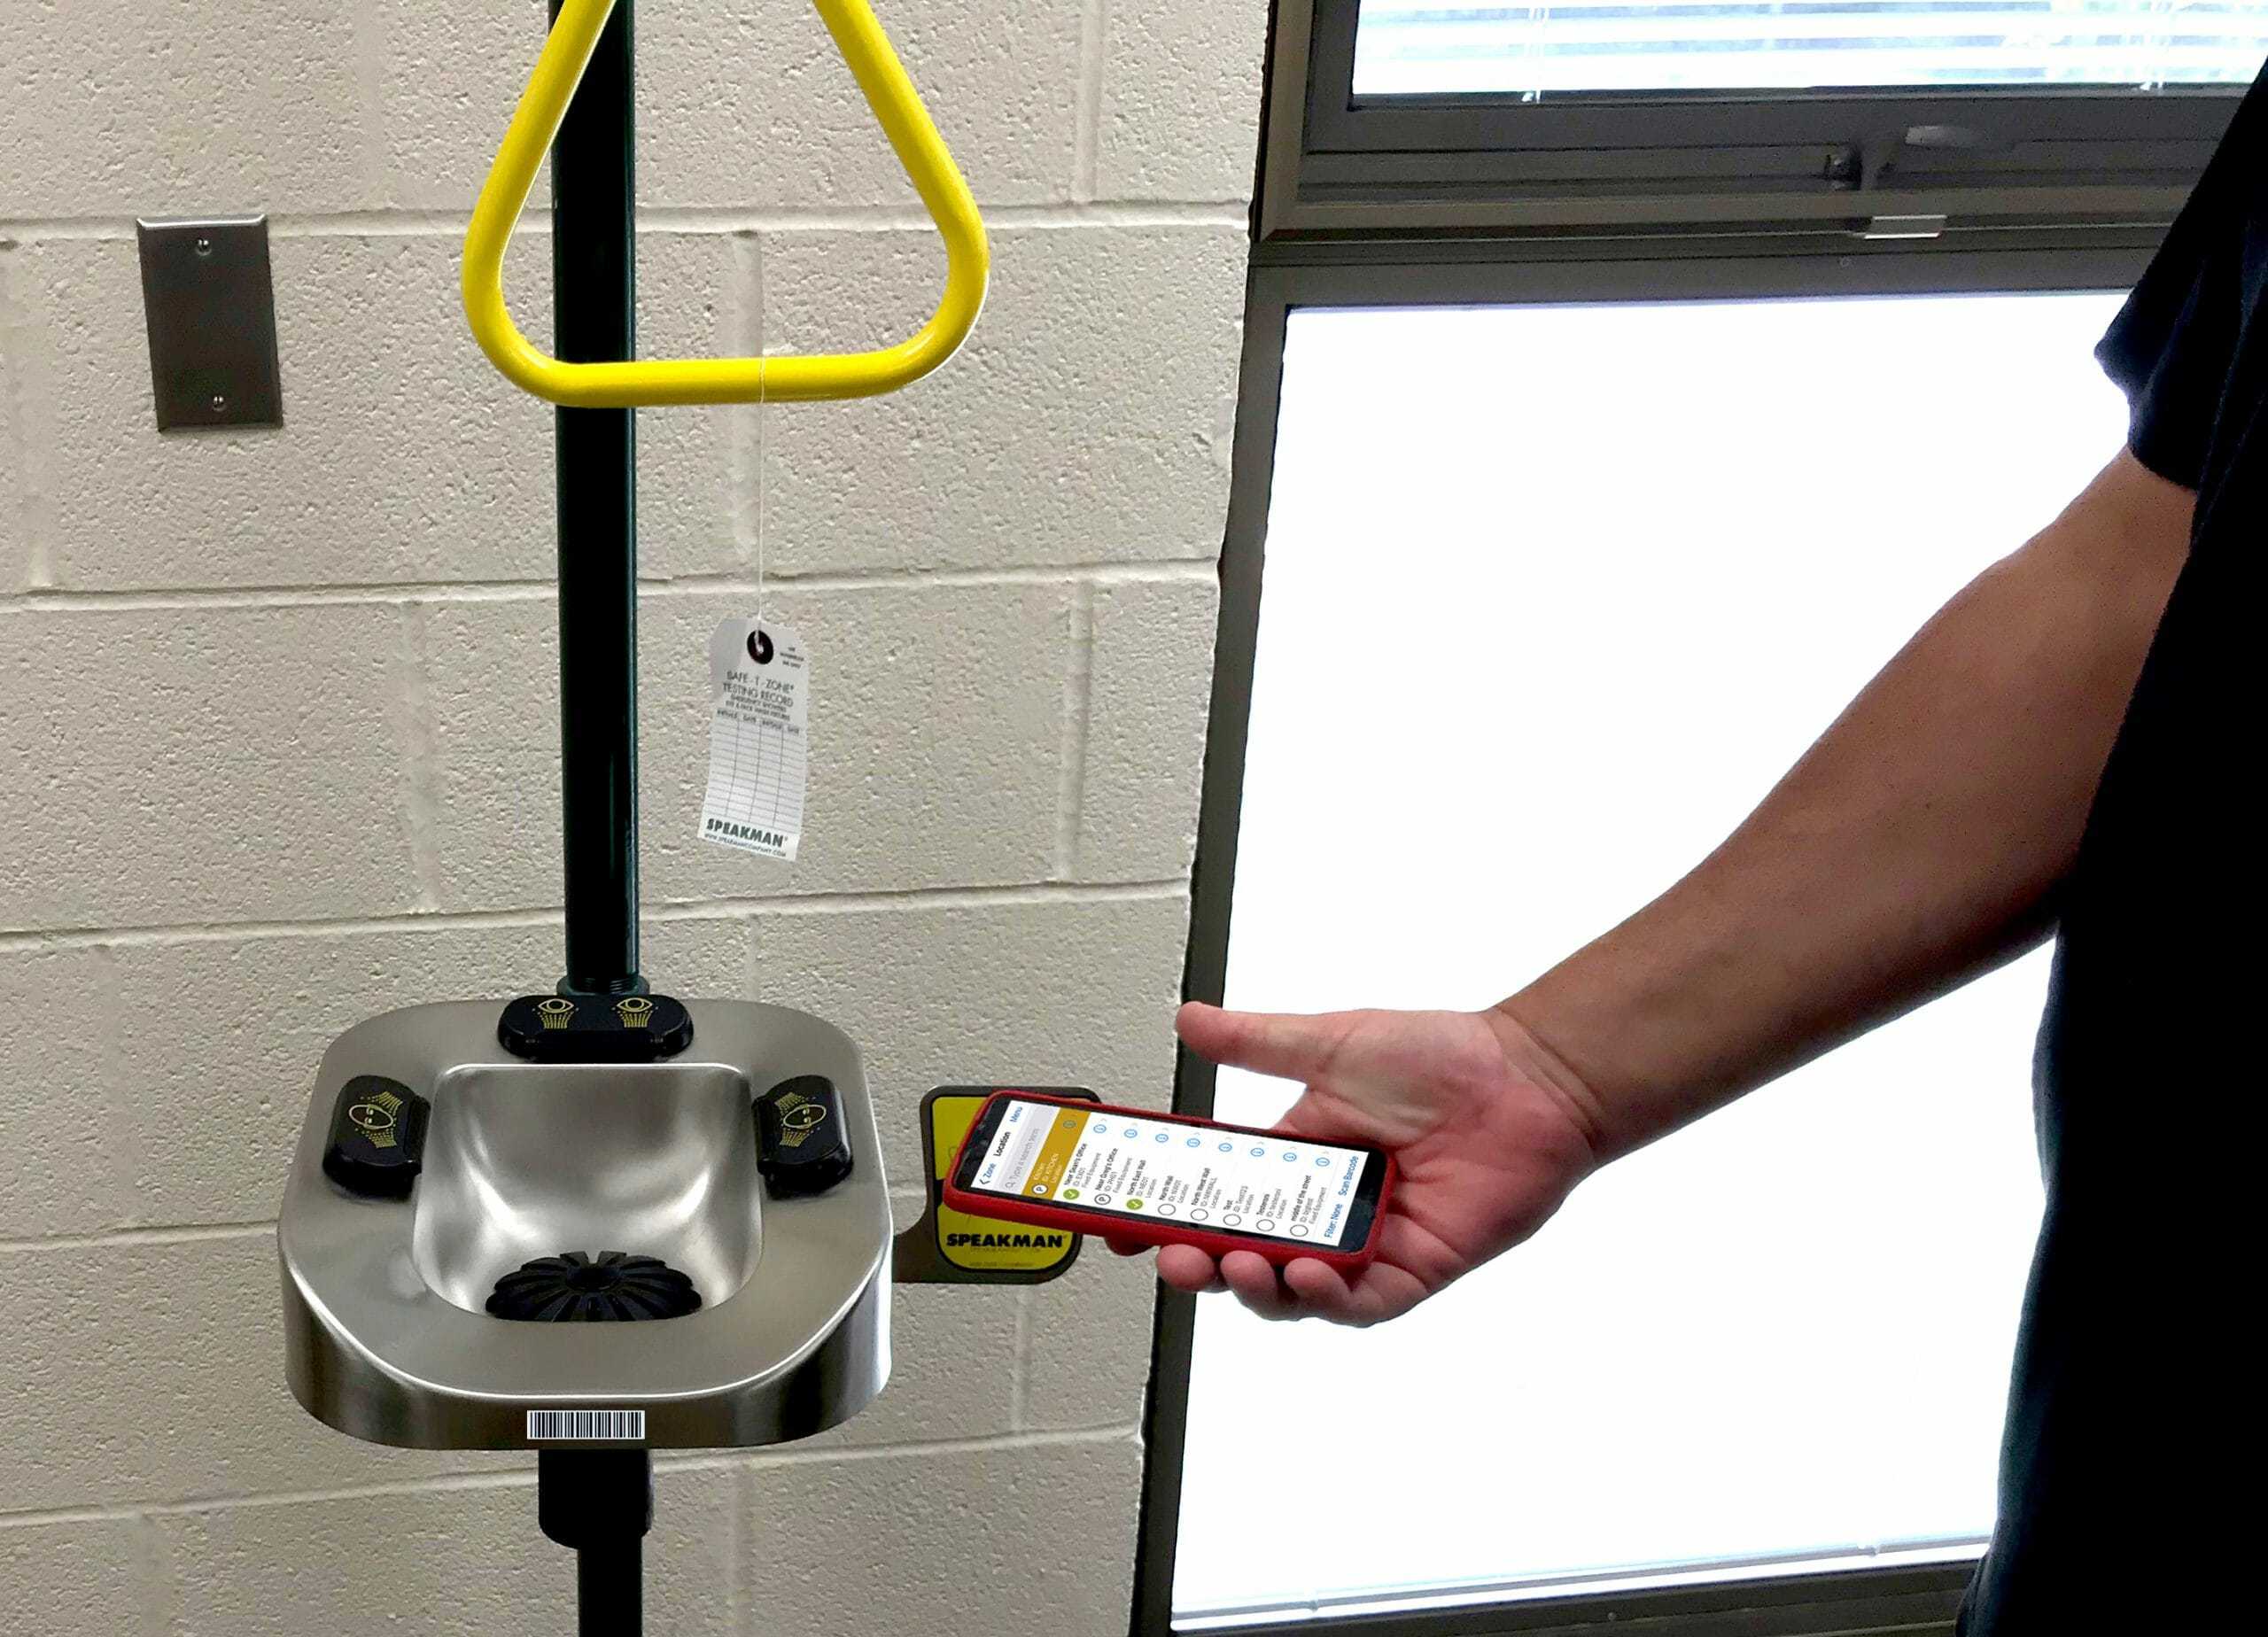 inspection app image showing EHS mobile barscan of an eyewash station